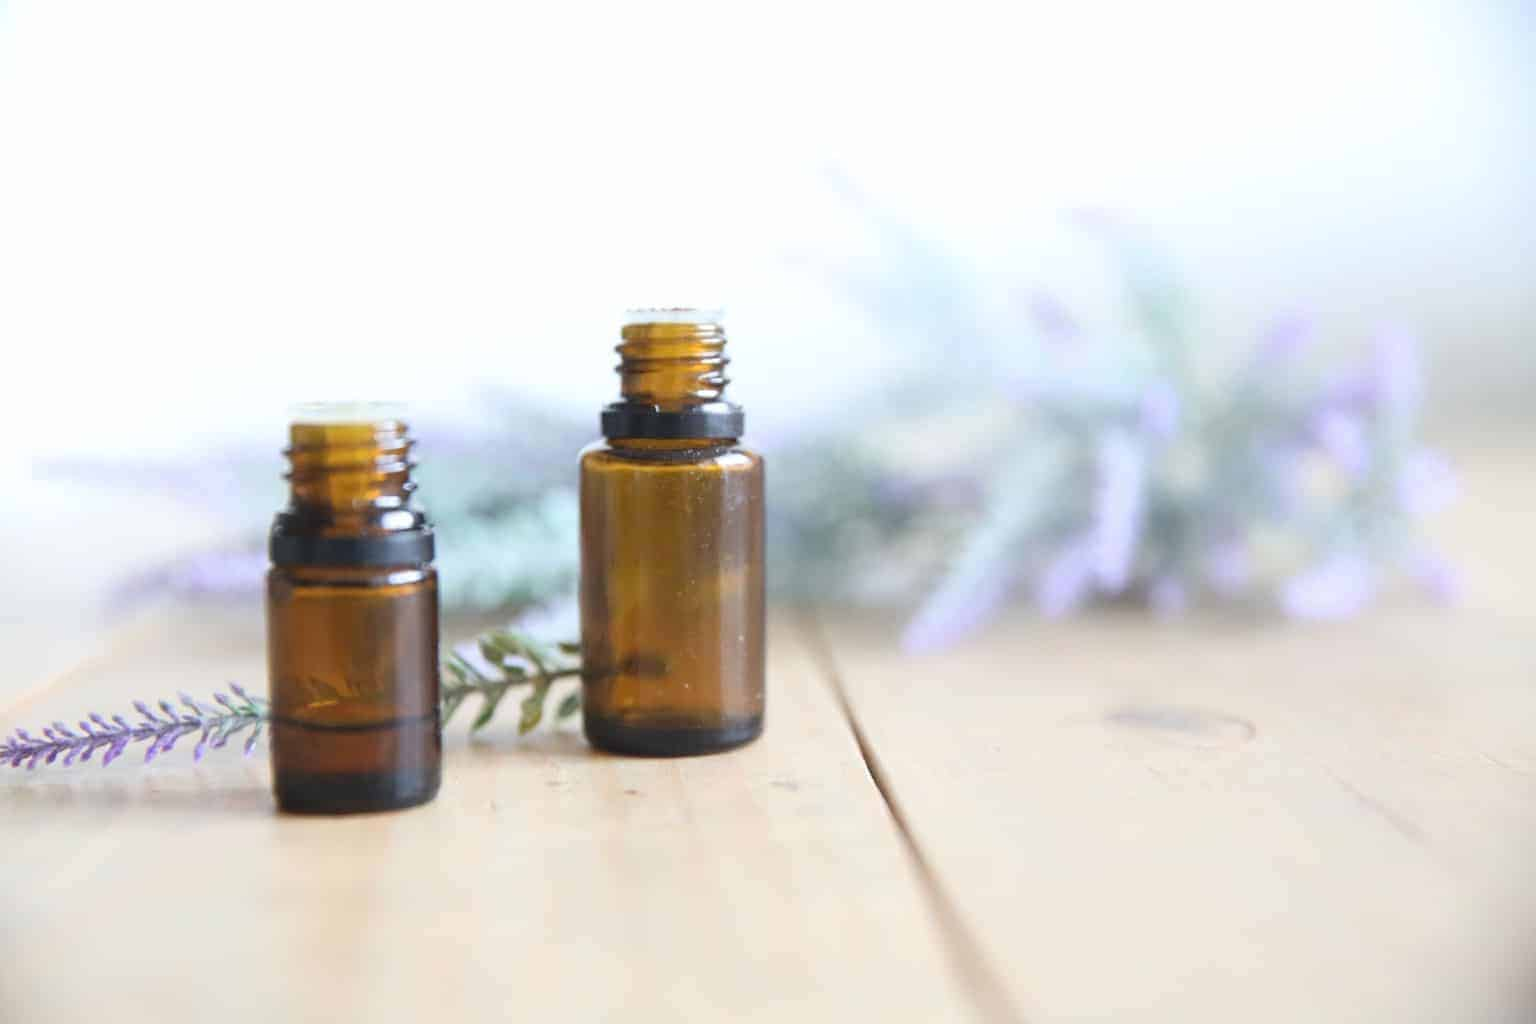 lavender essential oil dropper bottles surrounded by dried lavender sprigs